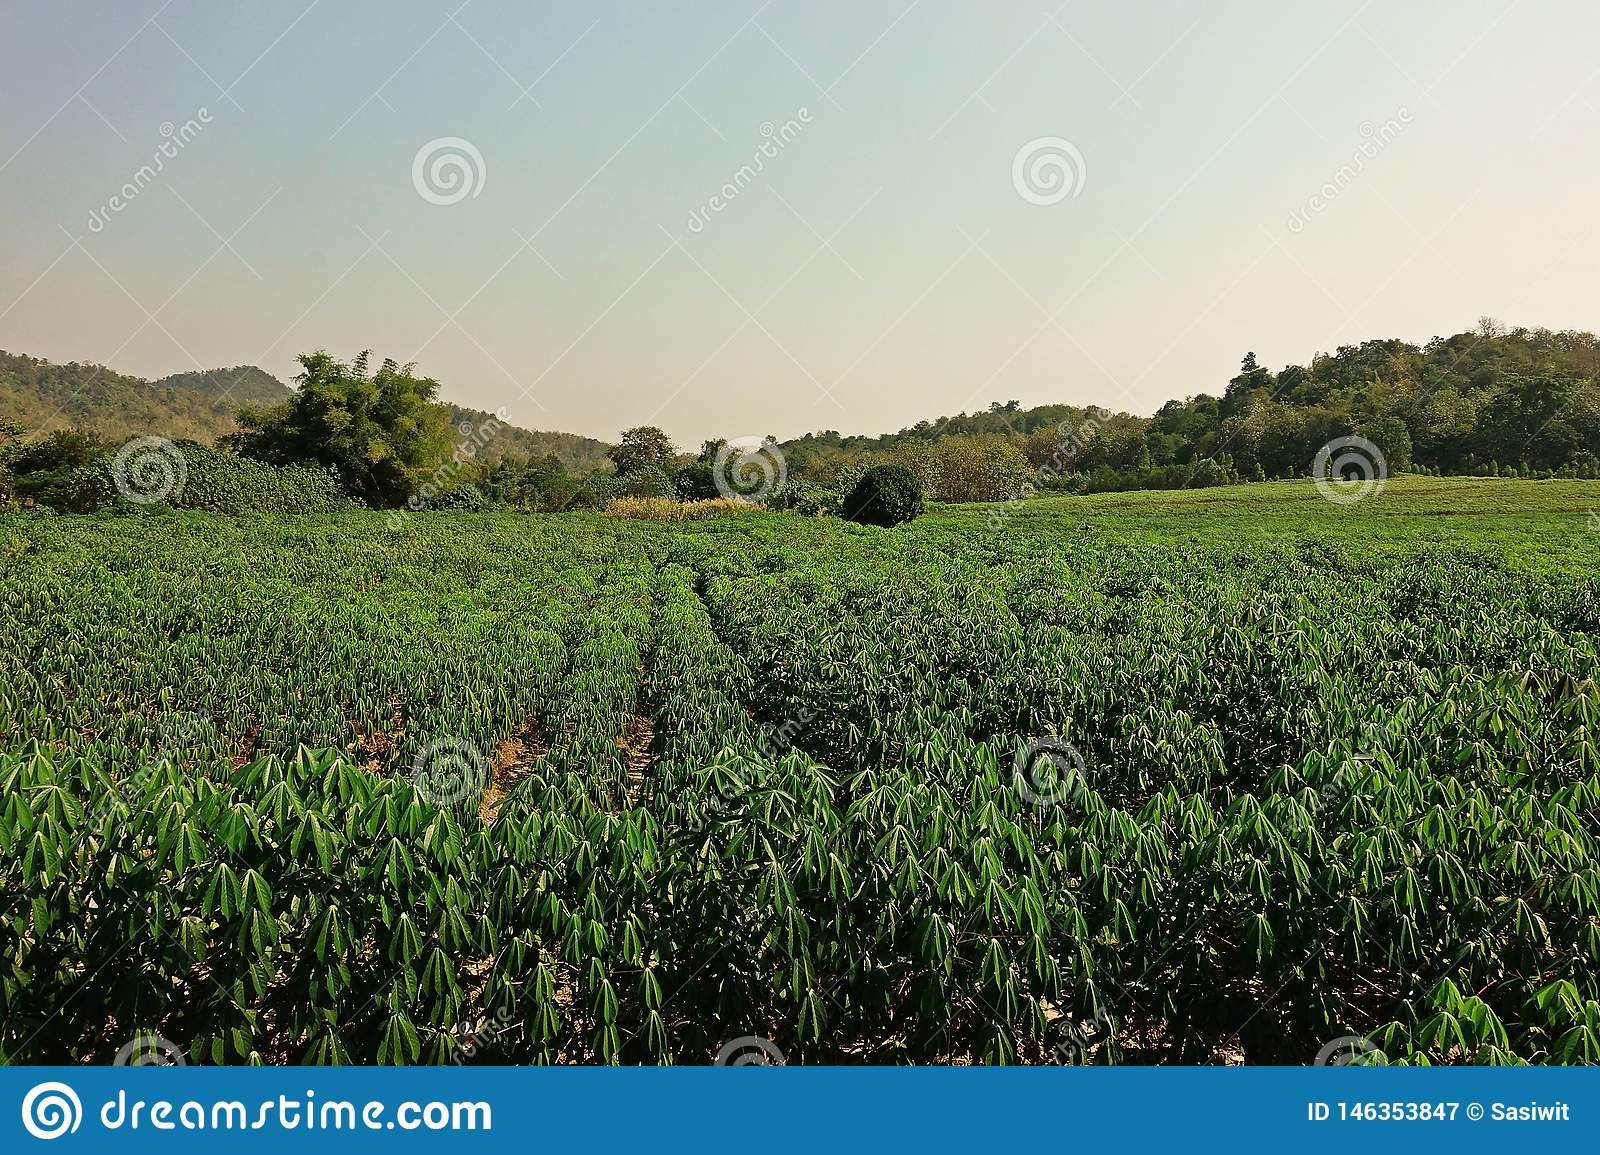 Plant industry field crops